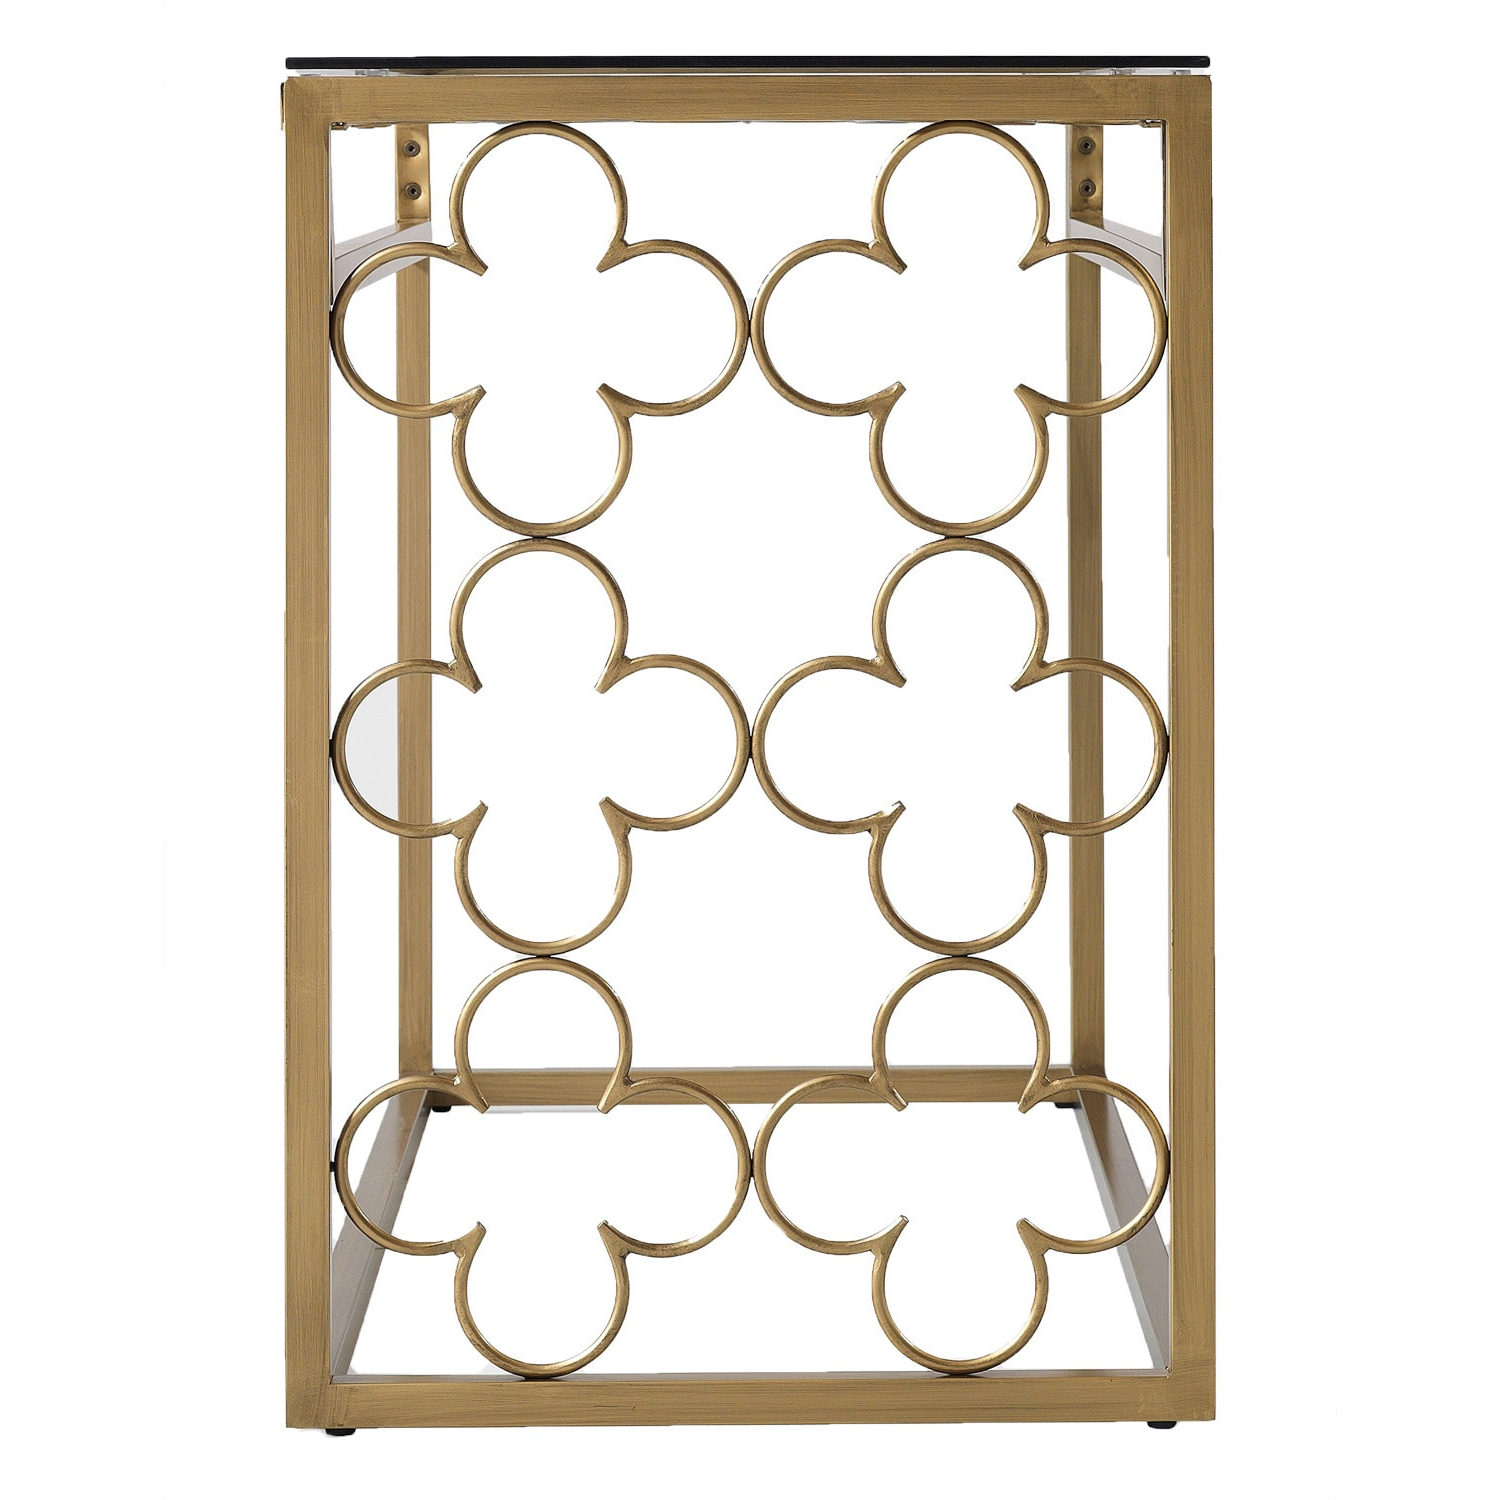 The Curated Nomad Quatrefoil Goldtone Metal And Glass Sofa Table Regarding Trendy The Curated Nomad Quatrefoil Goldtone Metal And Glass Coffee Tables (View 13 of 20)